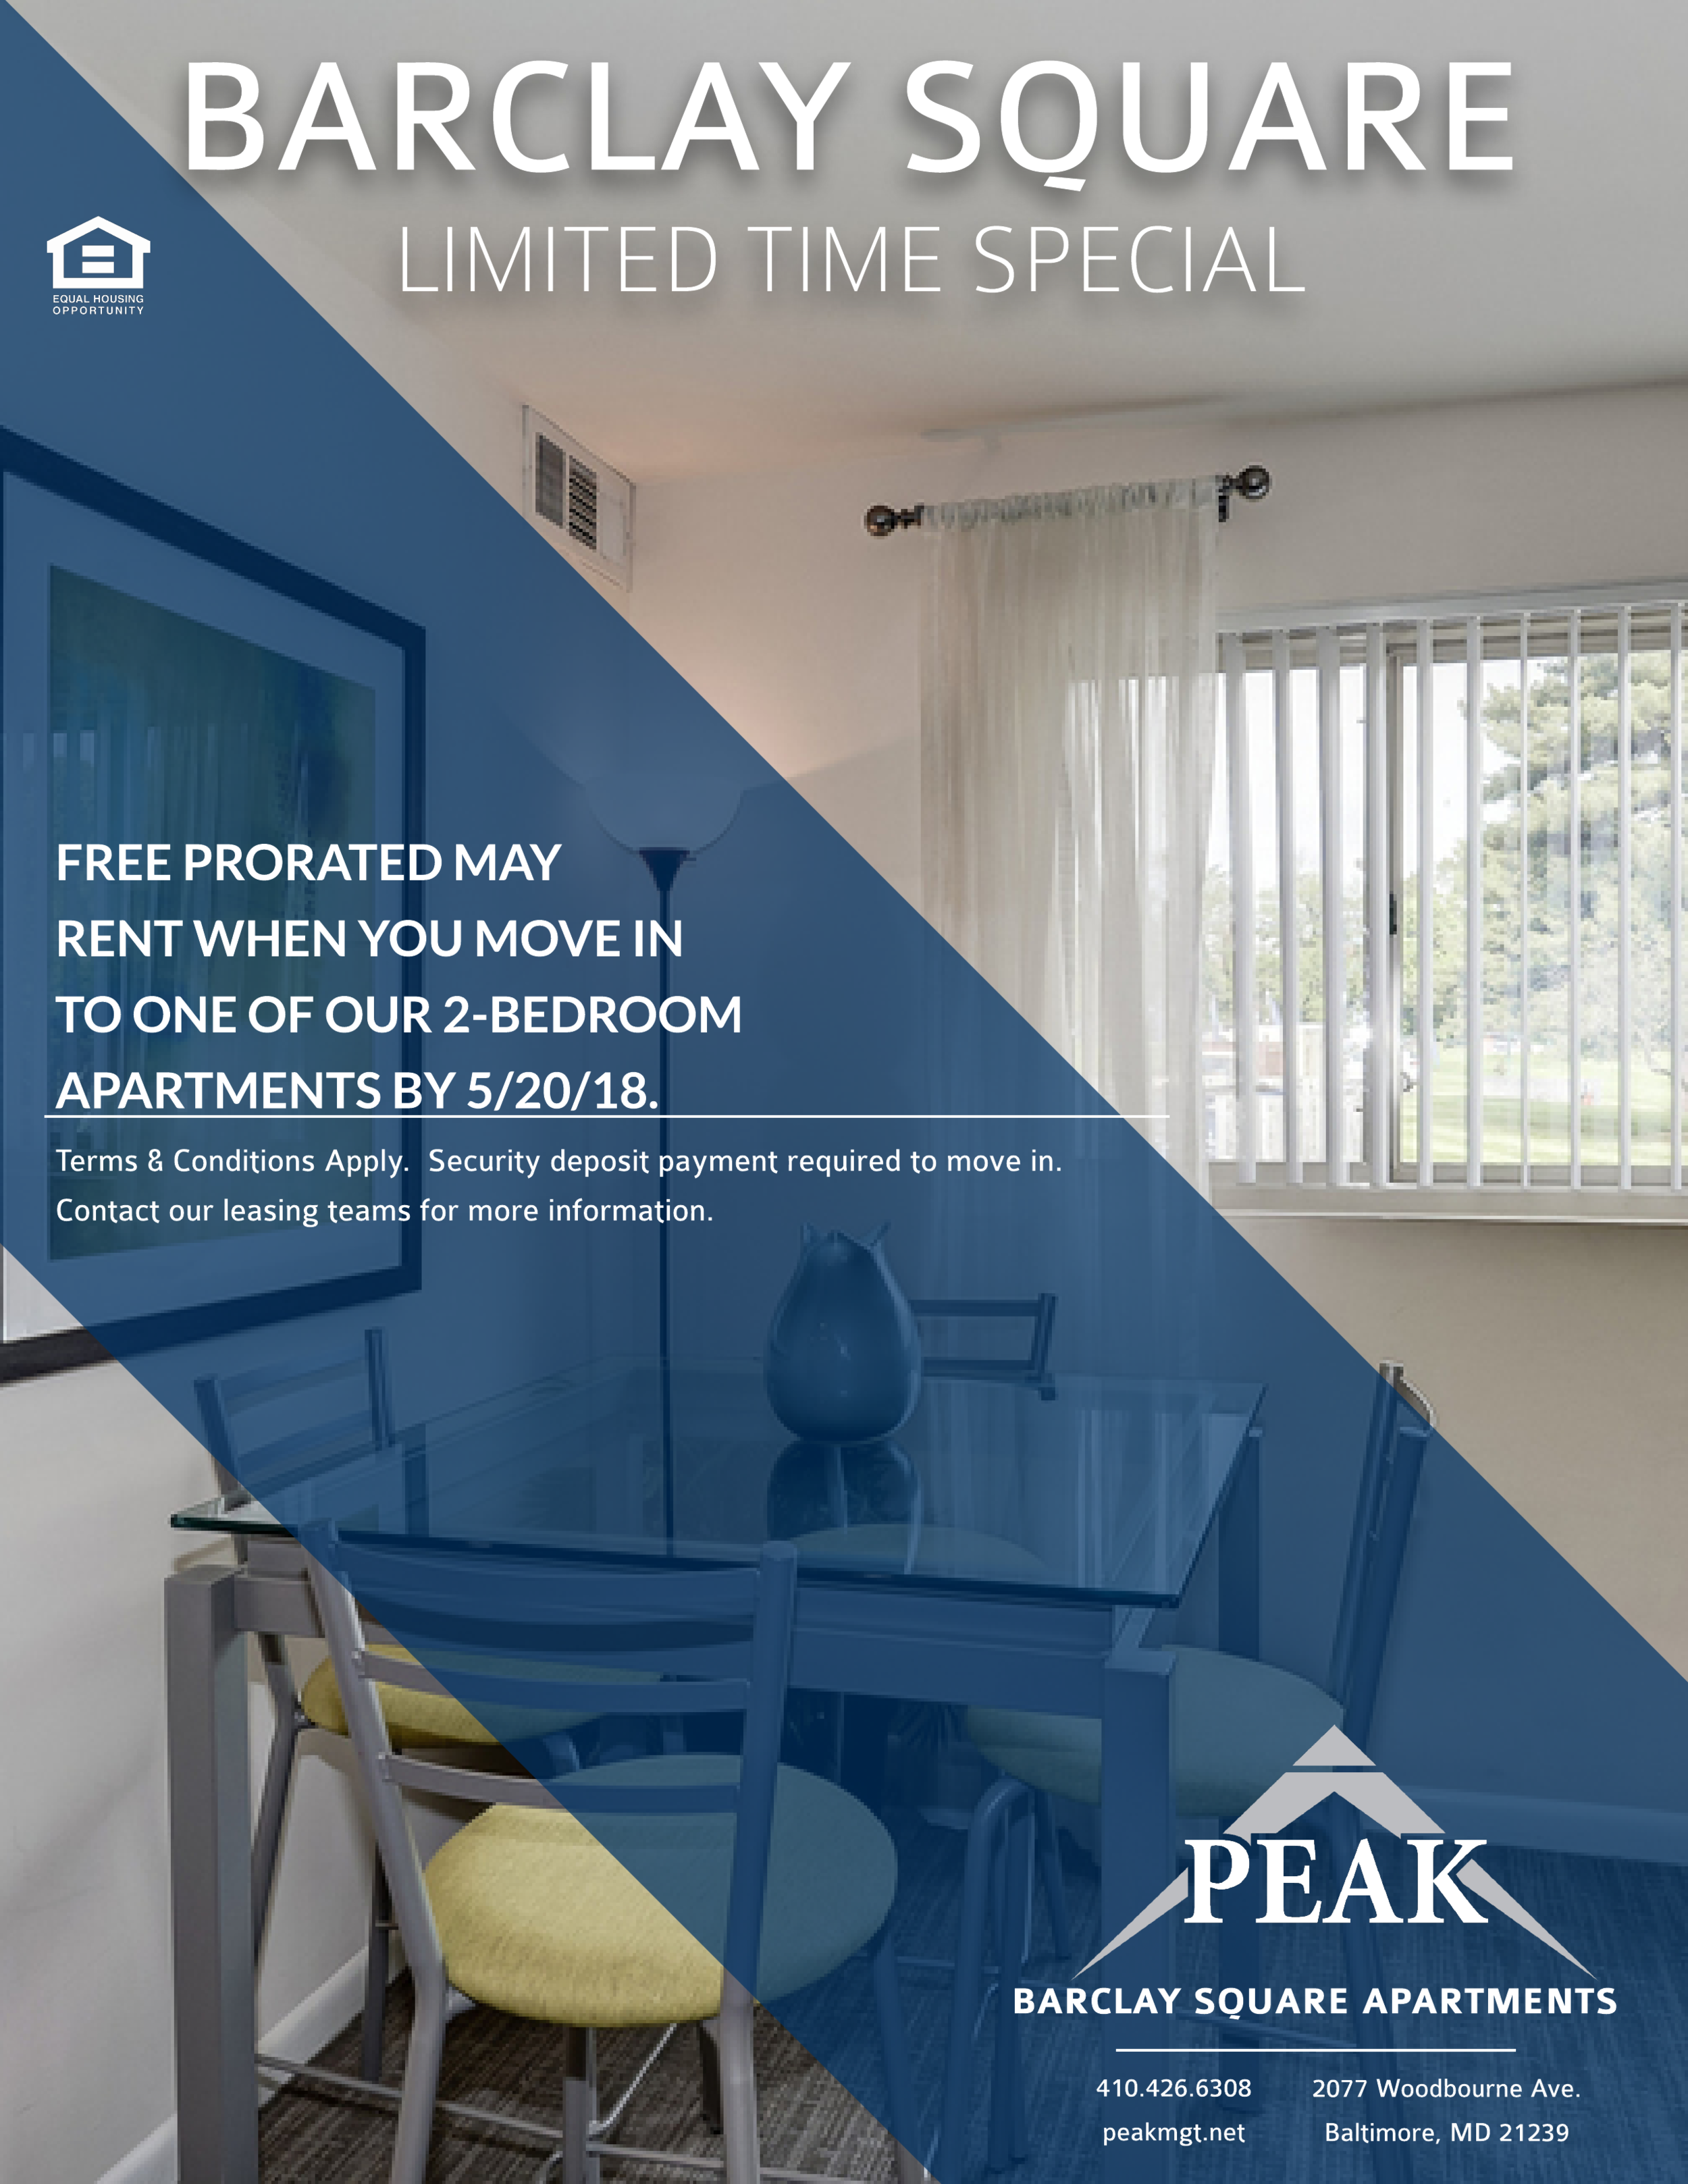 May 2018 Rent Promotion on 2 Bedroom Apartments at Barclay Square Apartments in Baltimore, MD